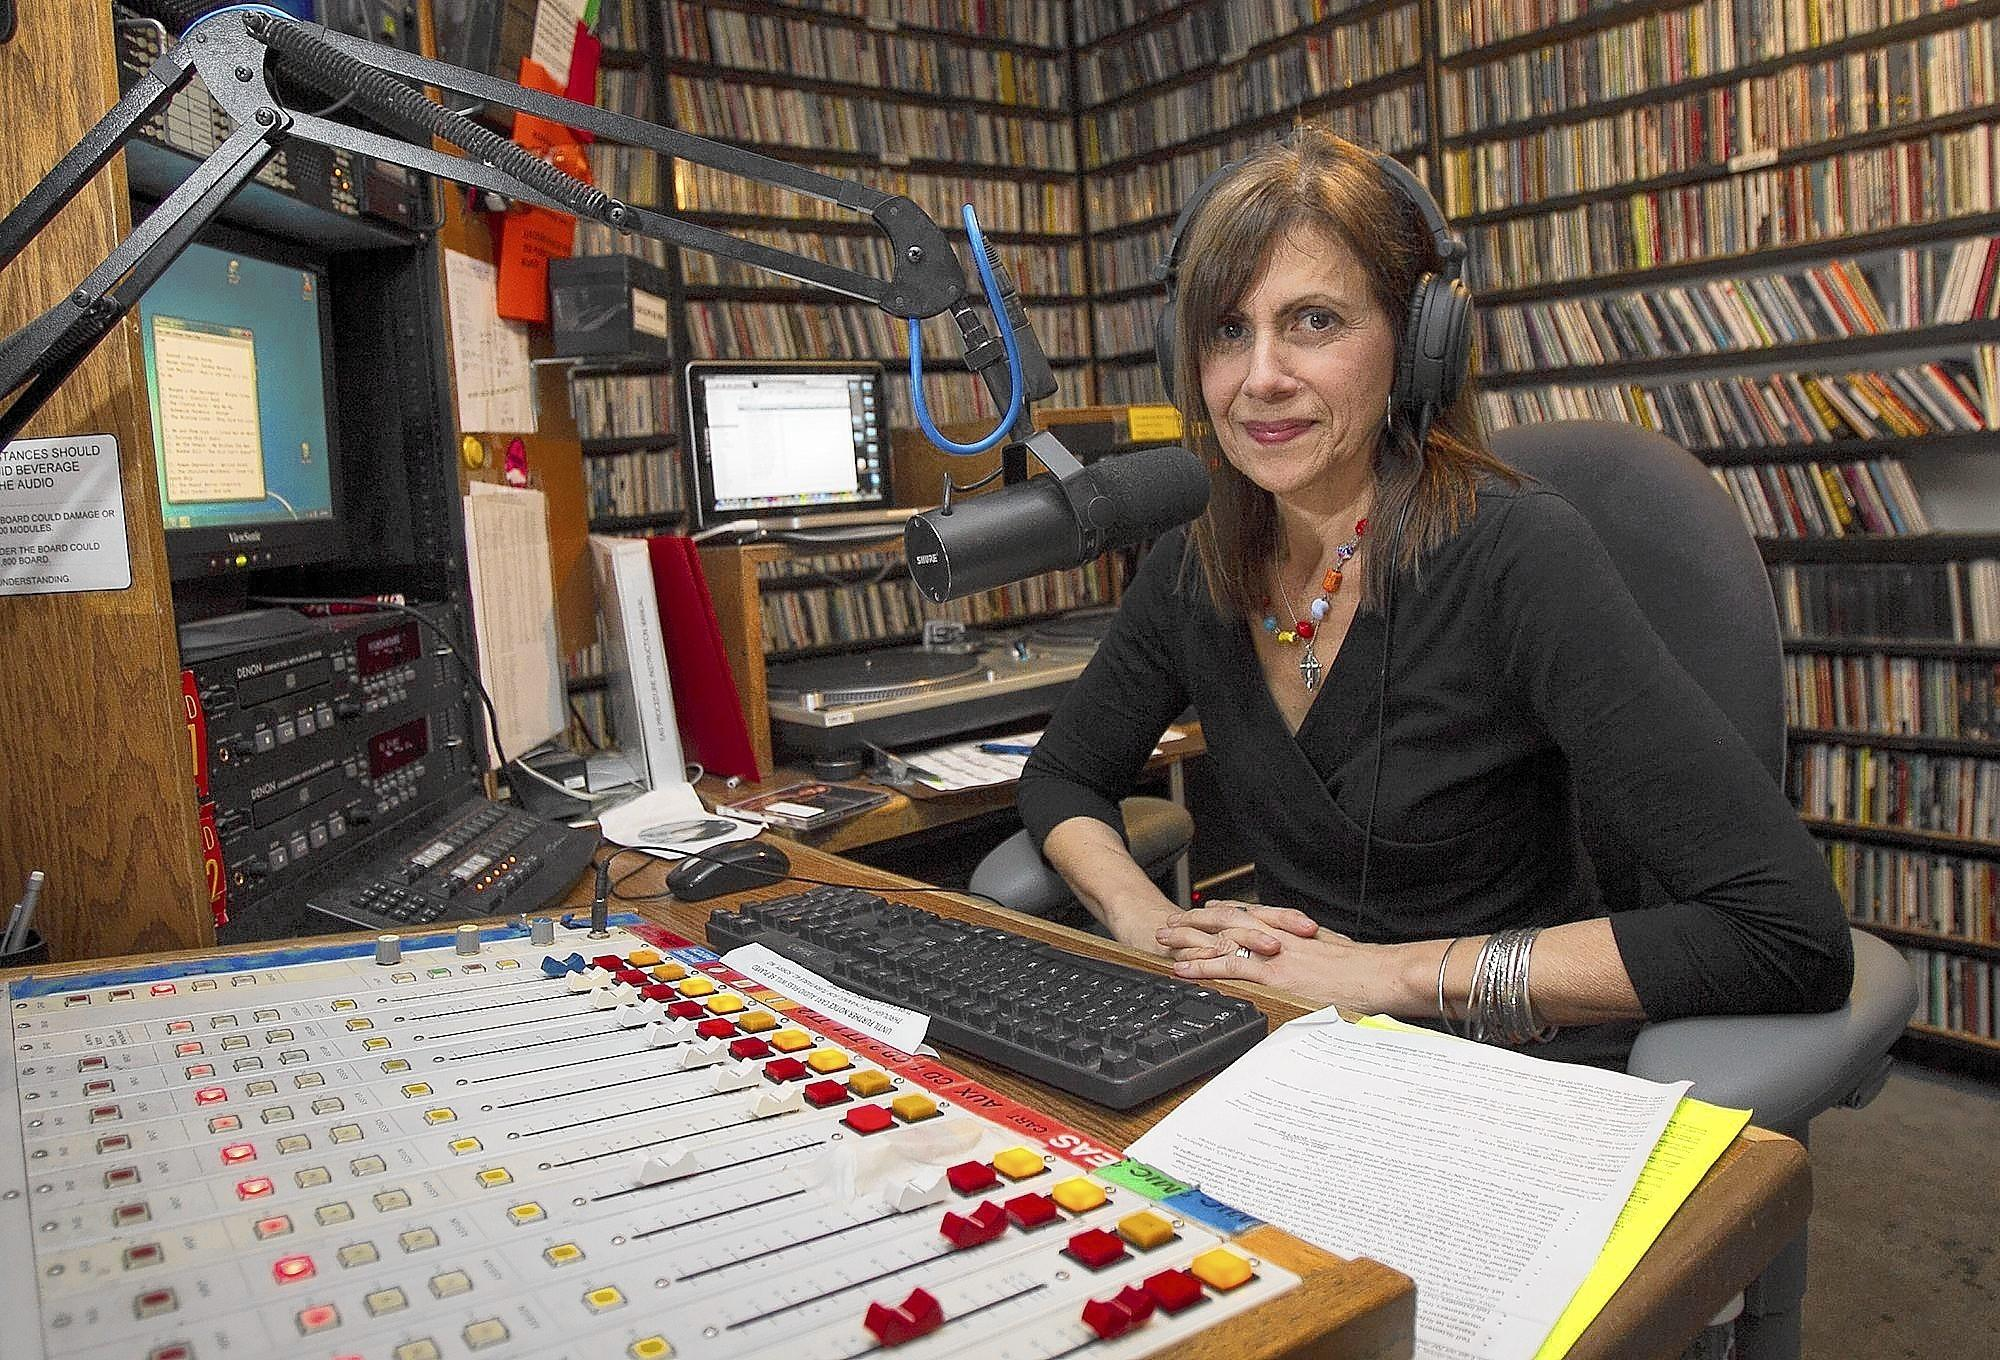 """Barbara DeMarco-Barrett is a public affairs host for the weekly radio show, """"Writers on Writing."""" The show is broadcast from the studios of KUCI-FM on the campus of UC Irvine."""